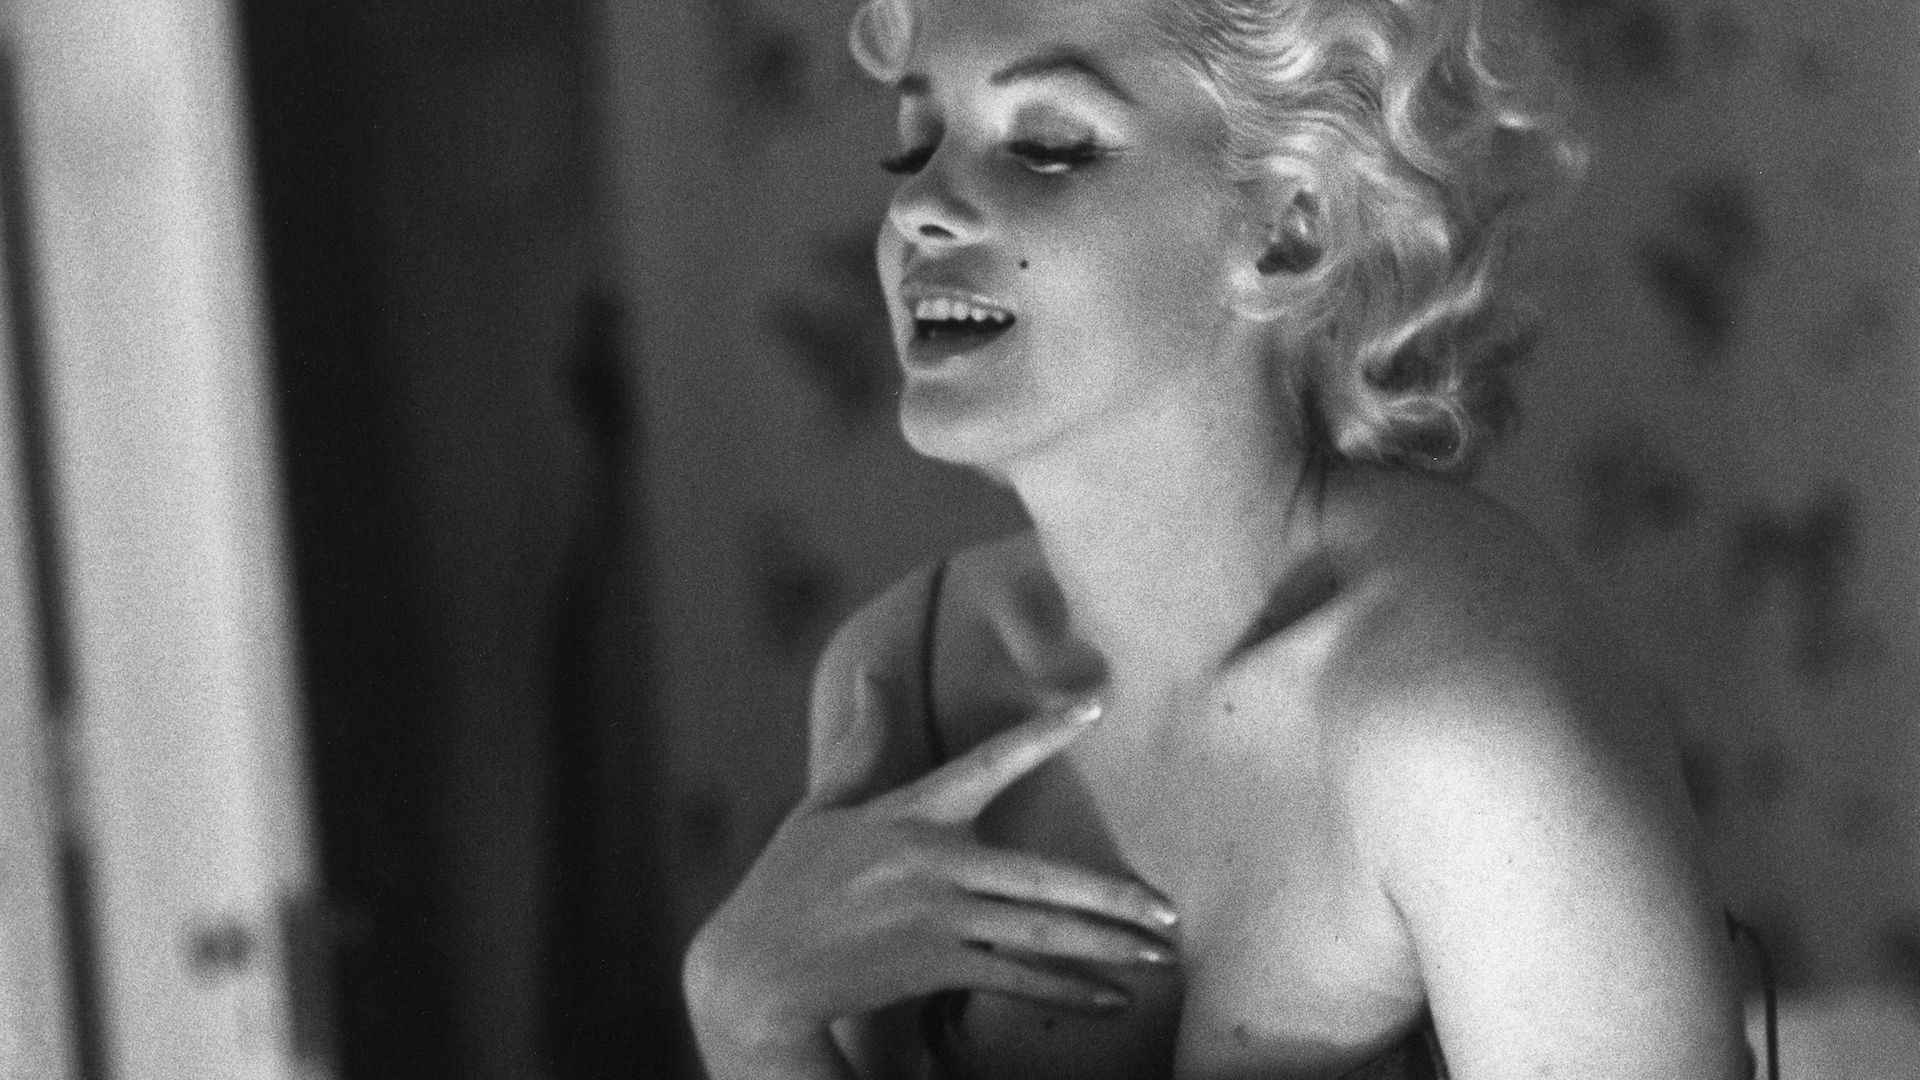 Marilyn Monroe applies her make-up and Chanel No. 5 perfume in 1955 - Credit: Ed Feingersh/Michael Ochs Archives/Getty